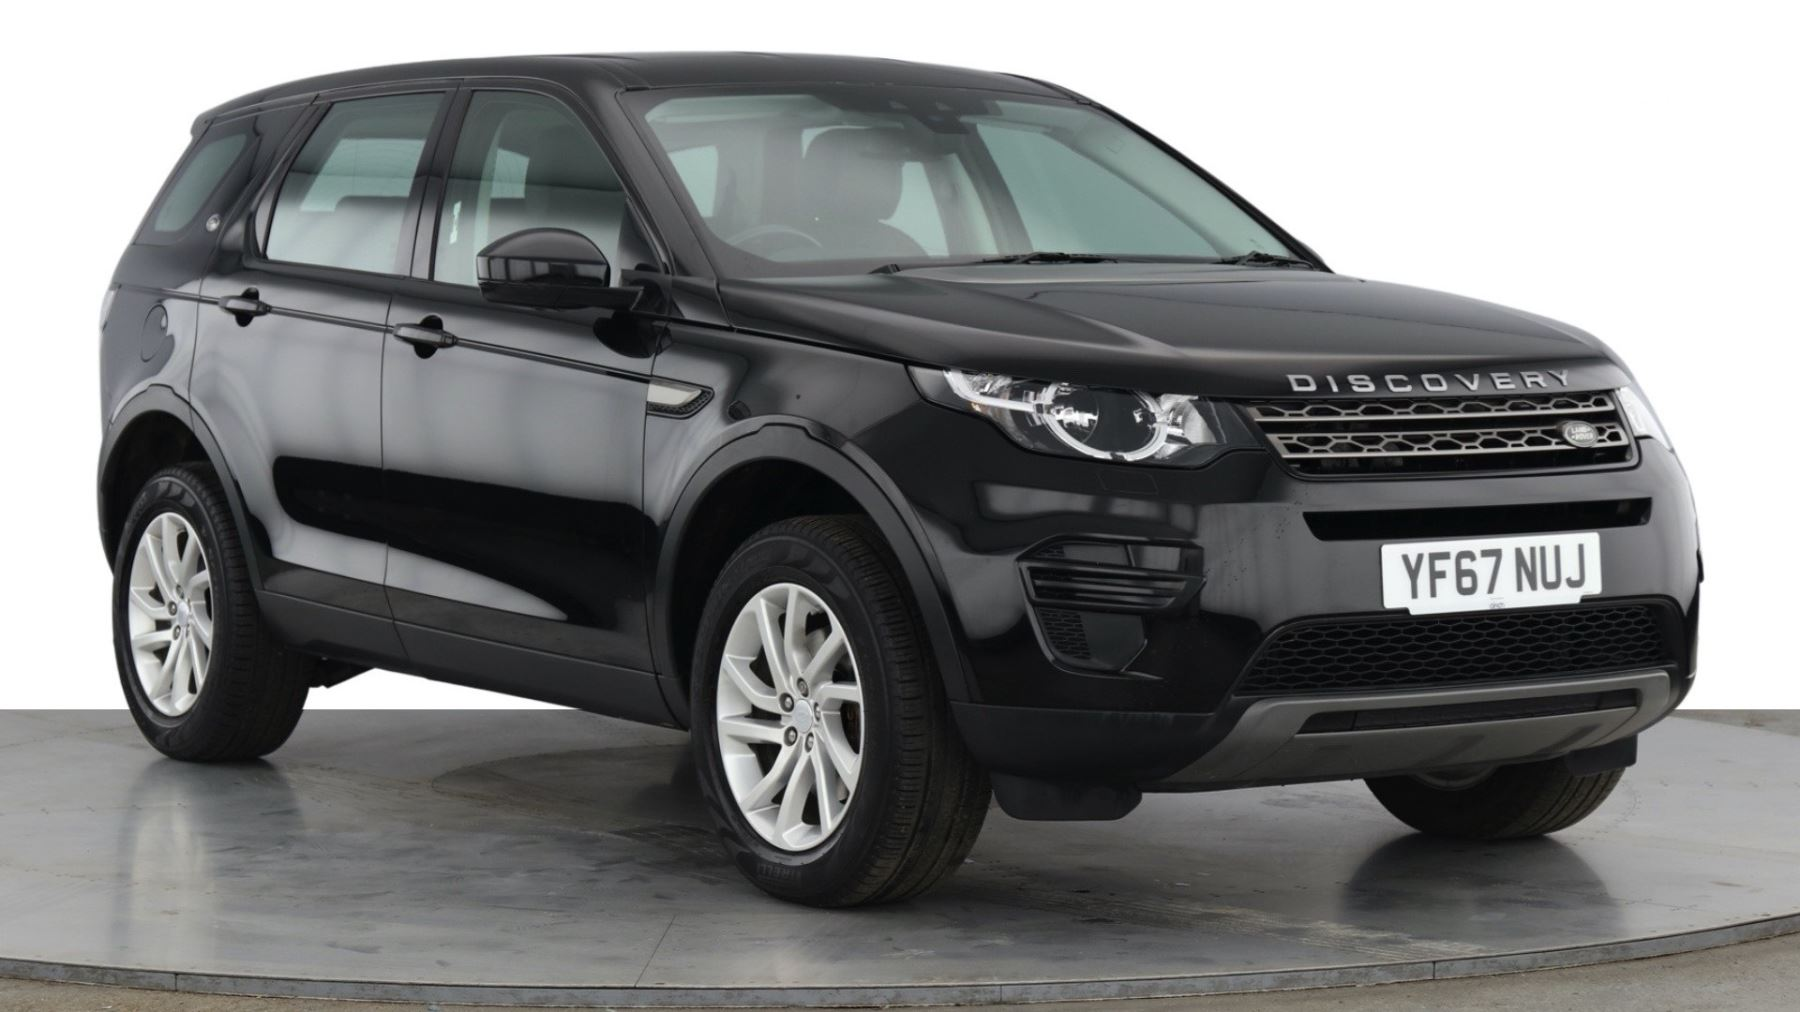 Land Rover Discovery Sport 2.0 TD4 180 SE - Seven Seats, Lane Keep Assist and Driver Condition Monitor Diesel Automatic 5 door Estate (2018) image